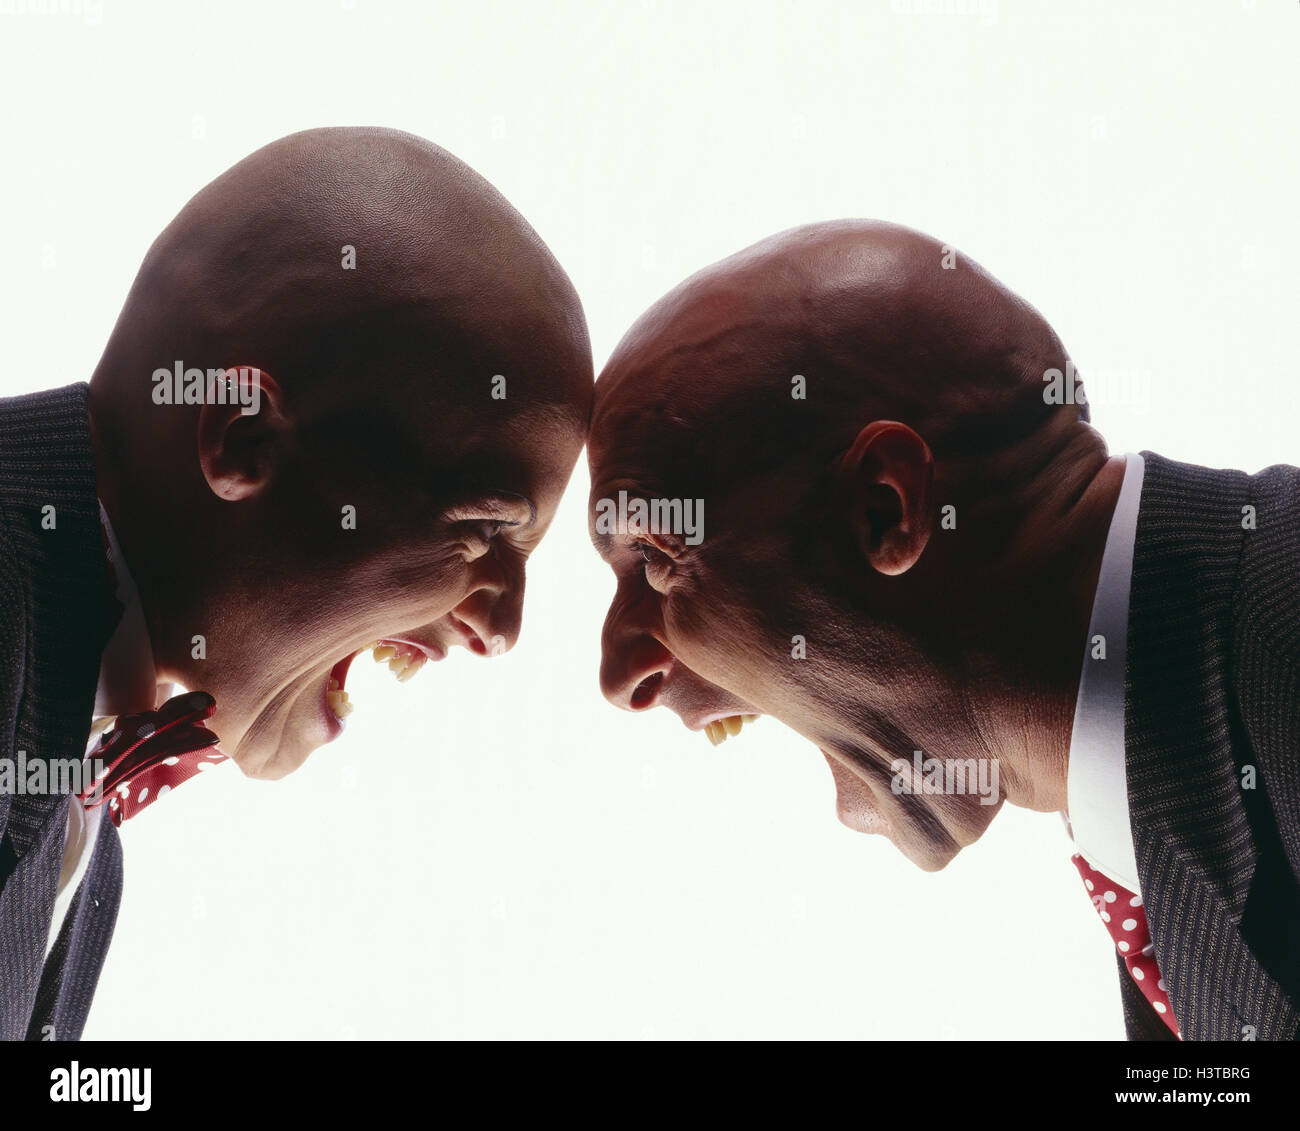 Couple, bald head, closely packed, gesture, 'shout', near mb 158 A3 - Stock Image